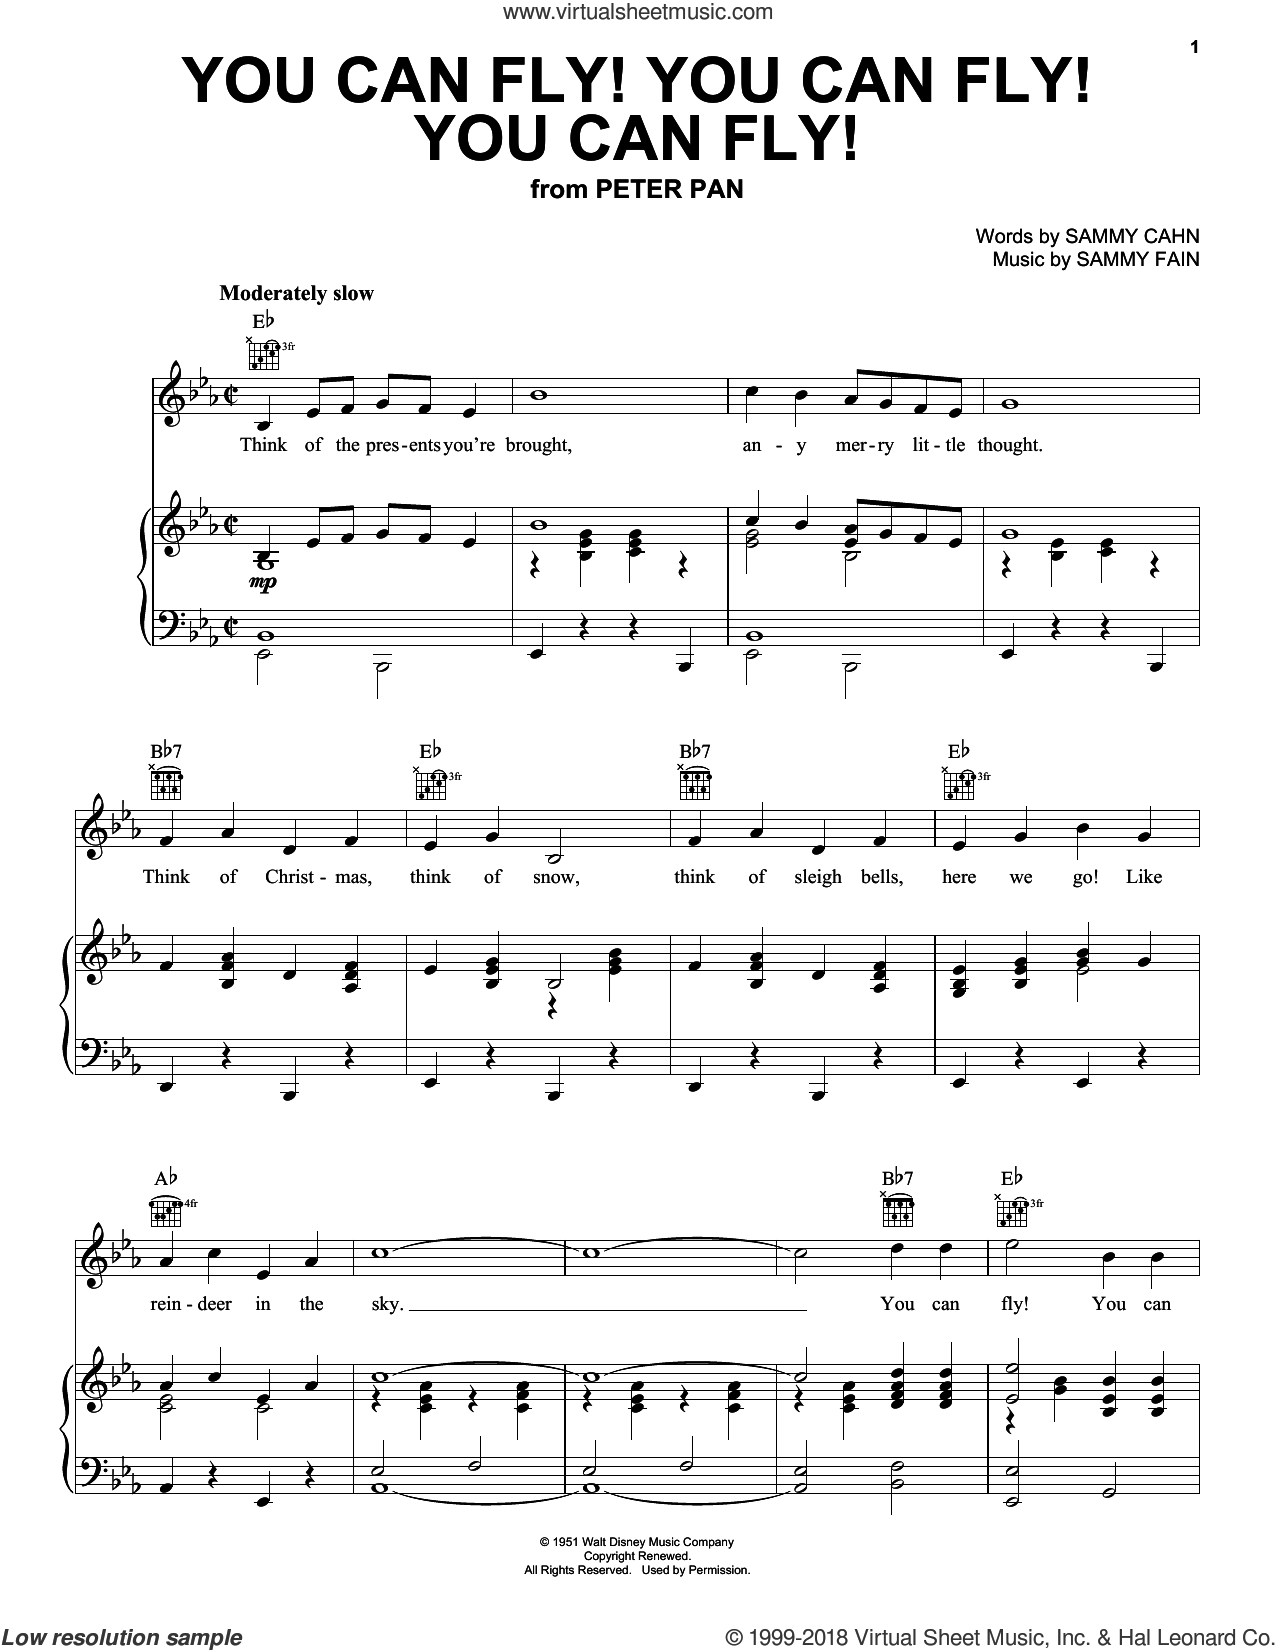 You Can Fly! You Can Fly! You Can Fly! sheet music for voice, piano or guitar by Sammy Fain and Sammy Cahn. Score Image Preview.